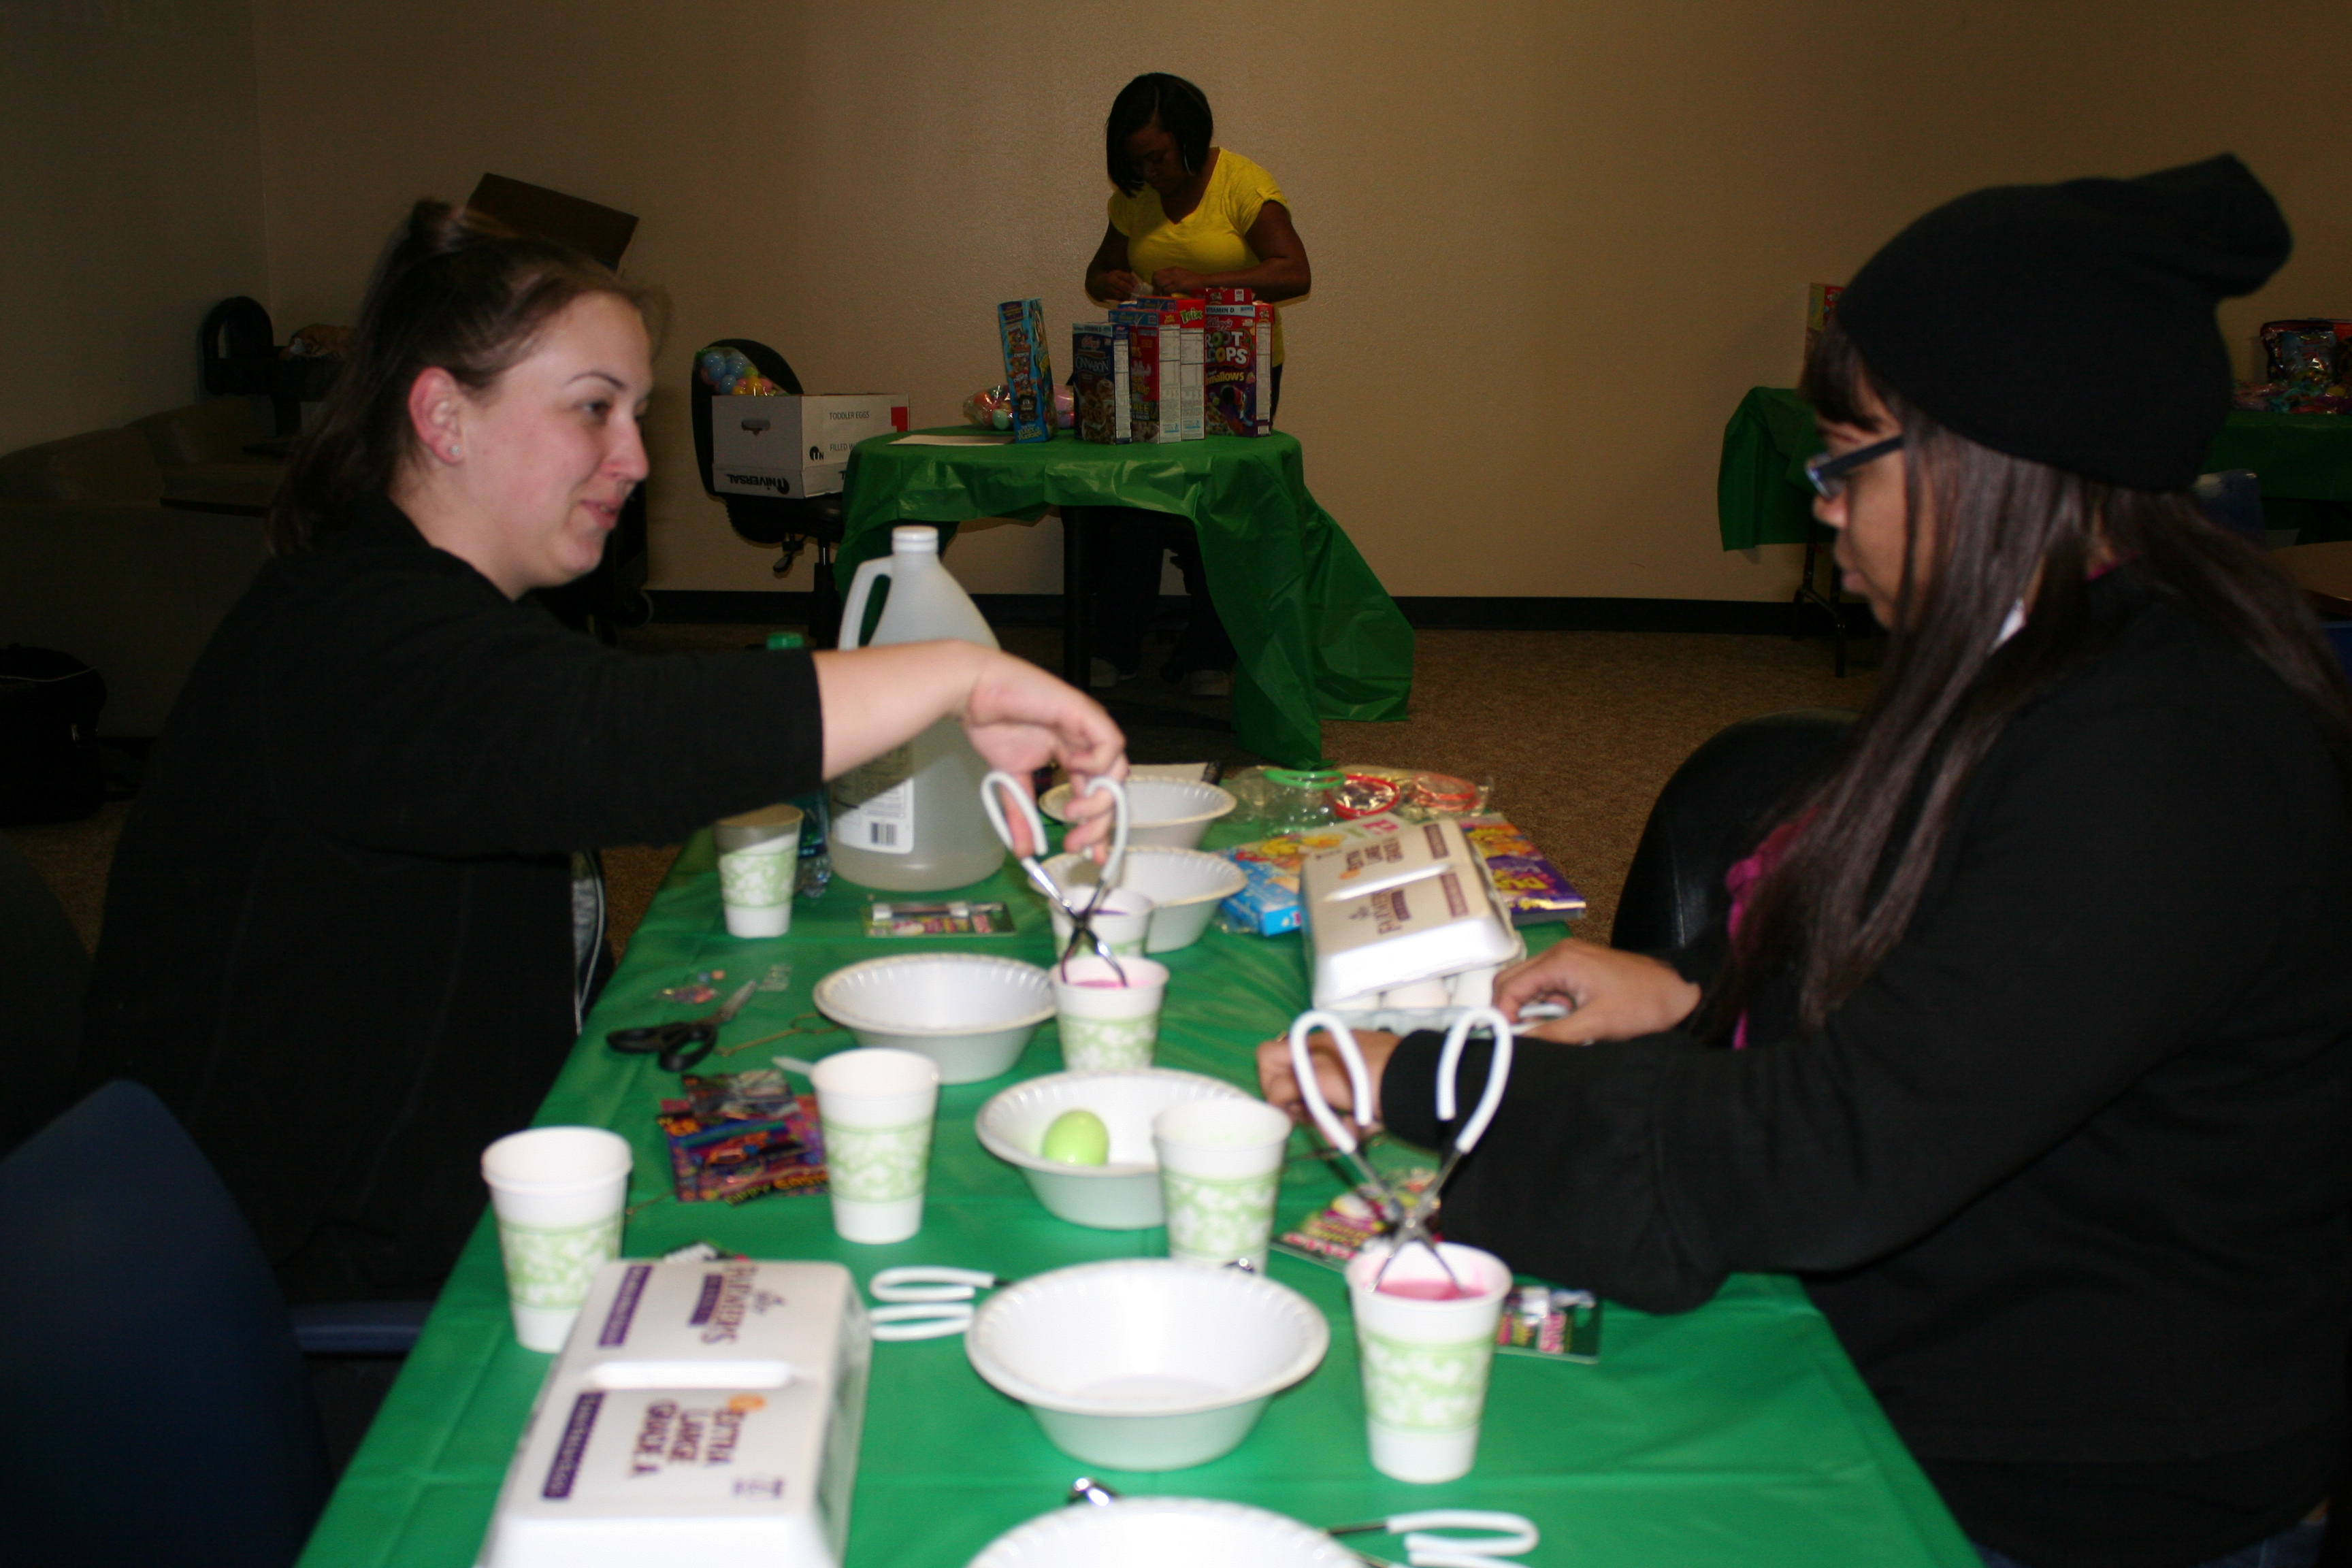 Students Candace Ruff (left) and Tenesha Montgomery (right) decorated eggs for the HTT spring festival.